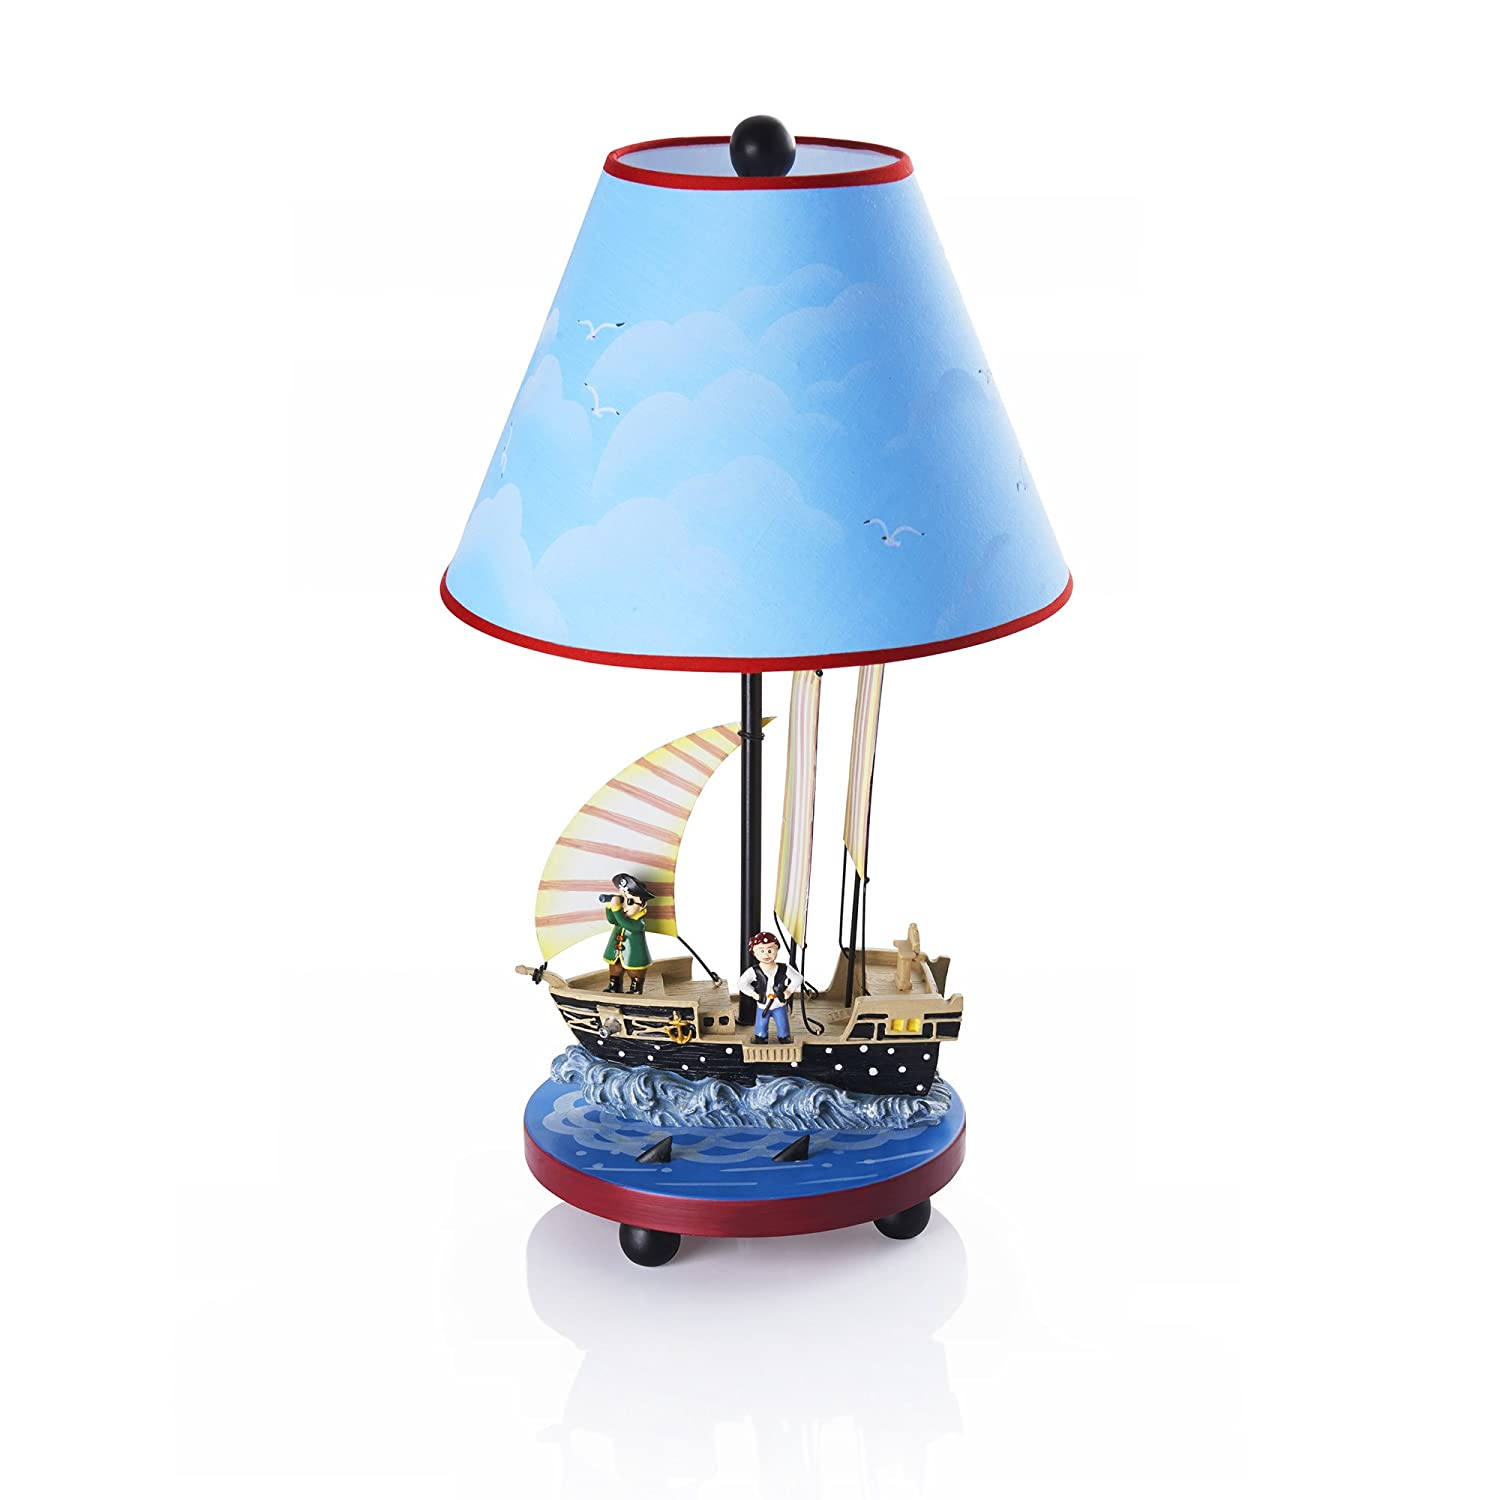 Amazon.com: Guidecraft Hand Painted U0026 Hand Crafted Pirate Table Lamp For  Kids Room: Home Improvement